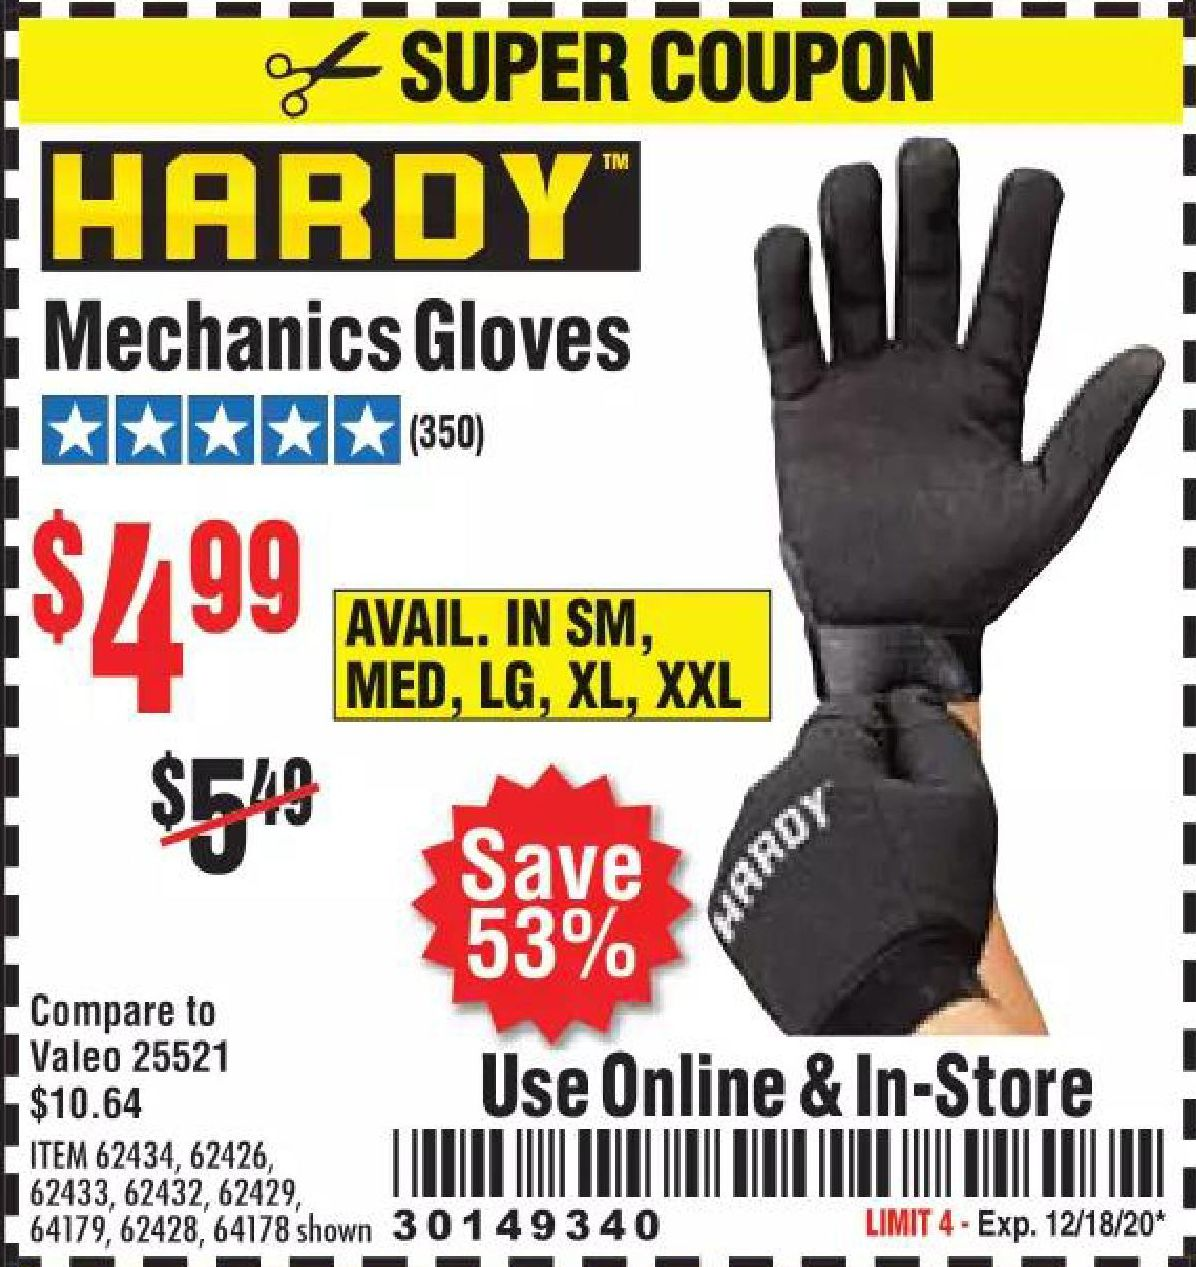 Harbor Freight HARDY MECHANICS GLOVES coupon